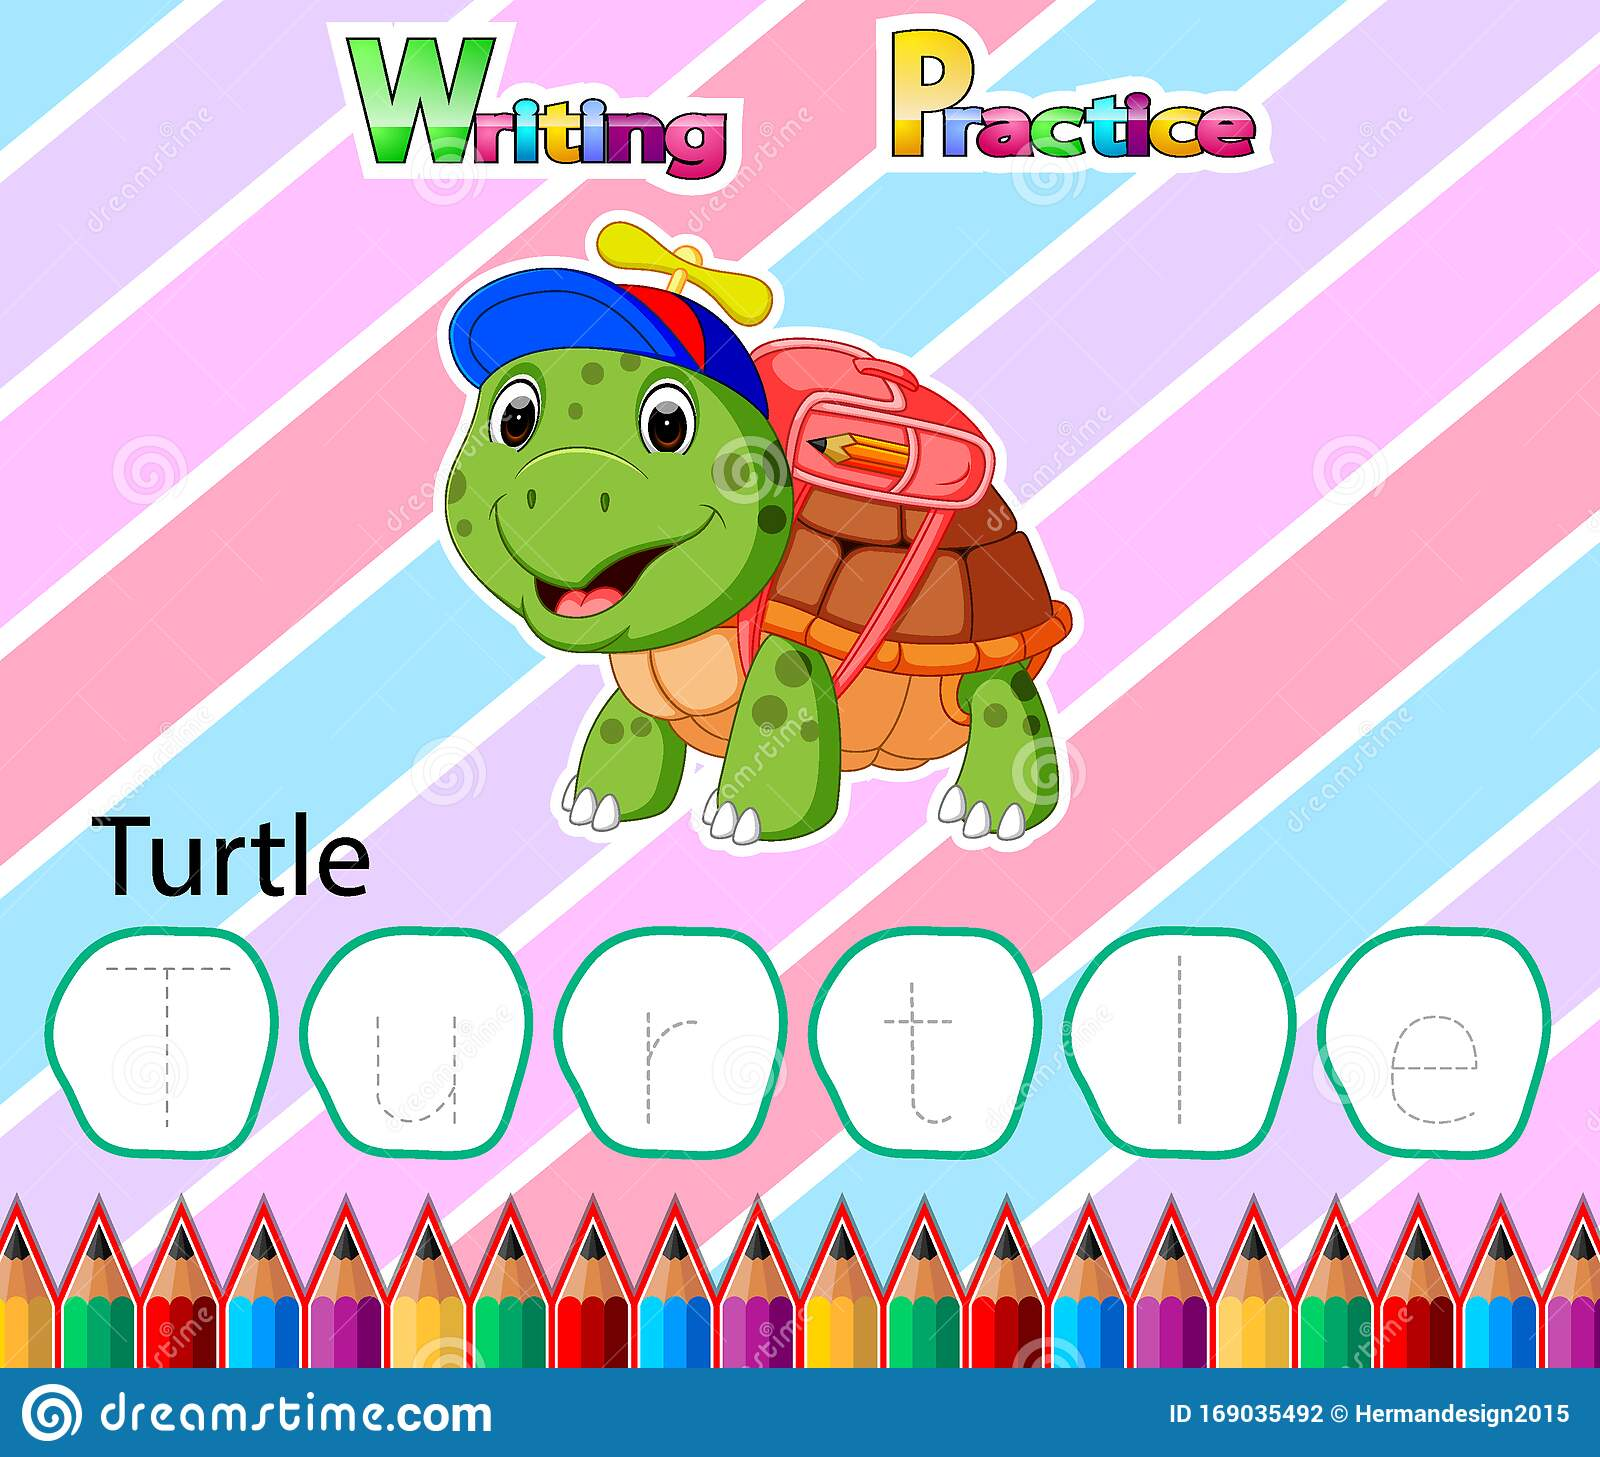 Worksheet Writing Practice Alphabet T For Turtle Stock